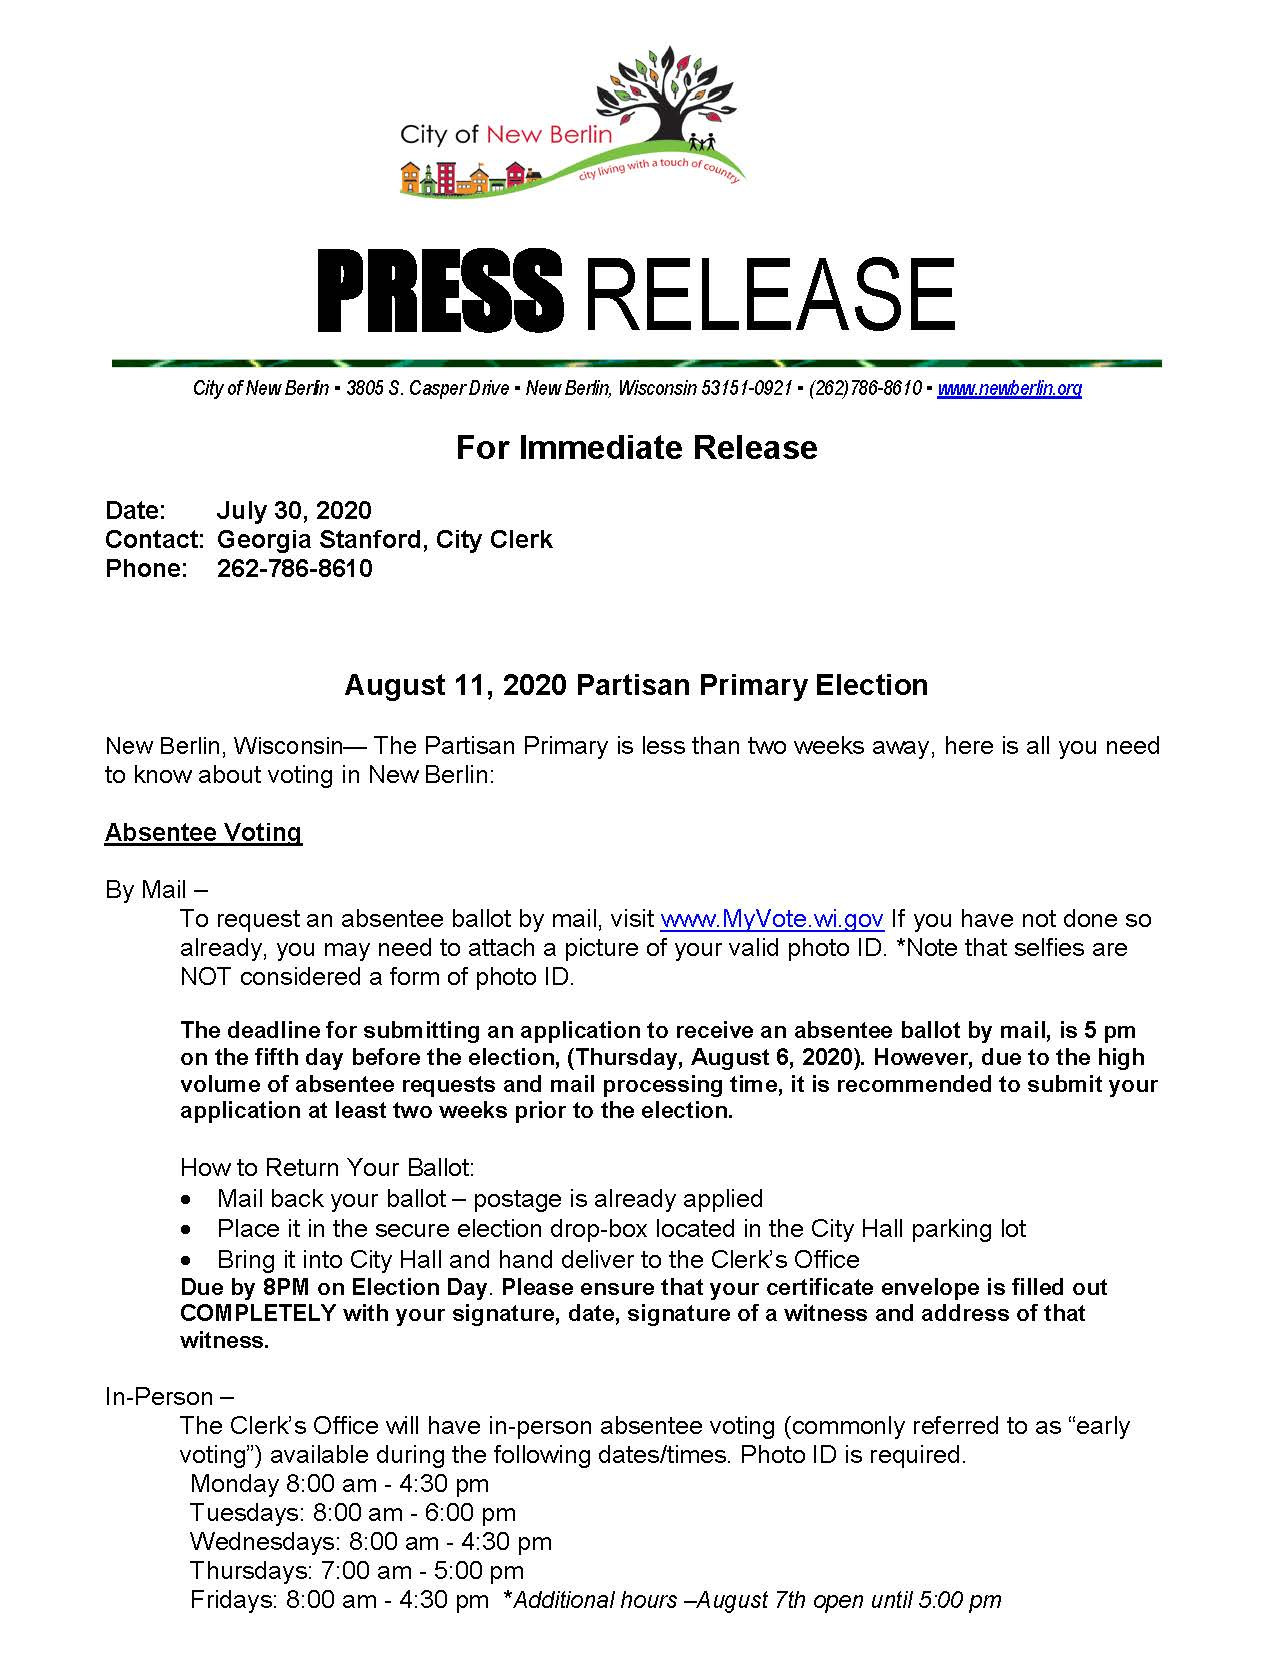 Press Release - August Election 07272020 final_Page_1